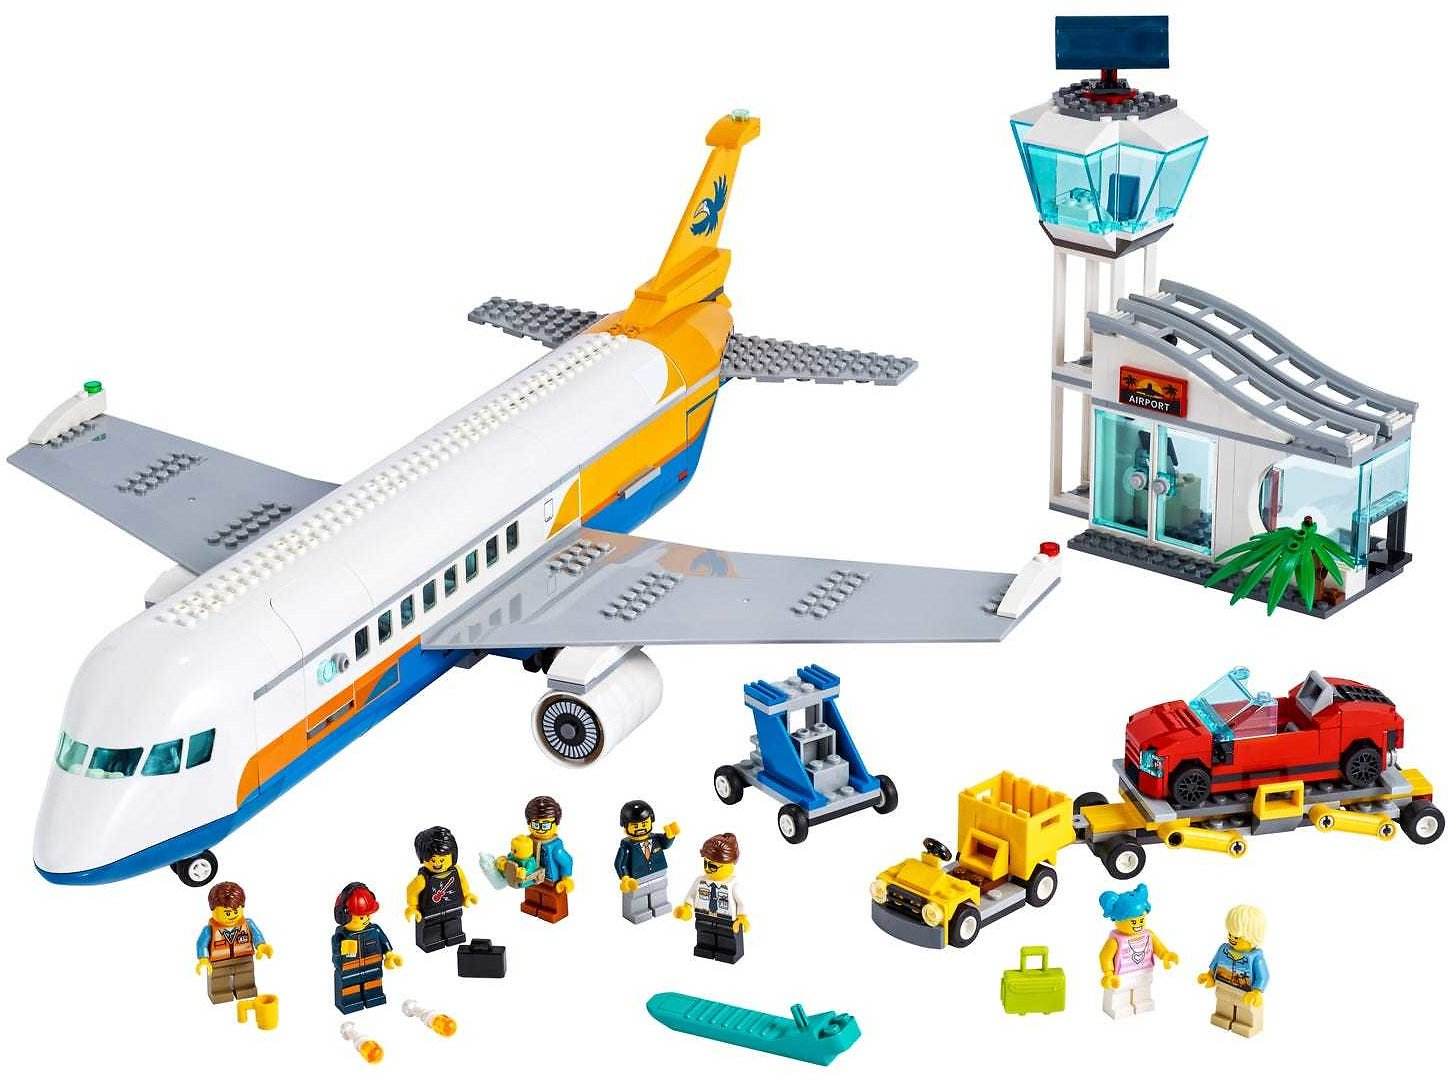 Passenger Airplane 60262 | City | Buy Online At The Official LEGO® Shop US